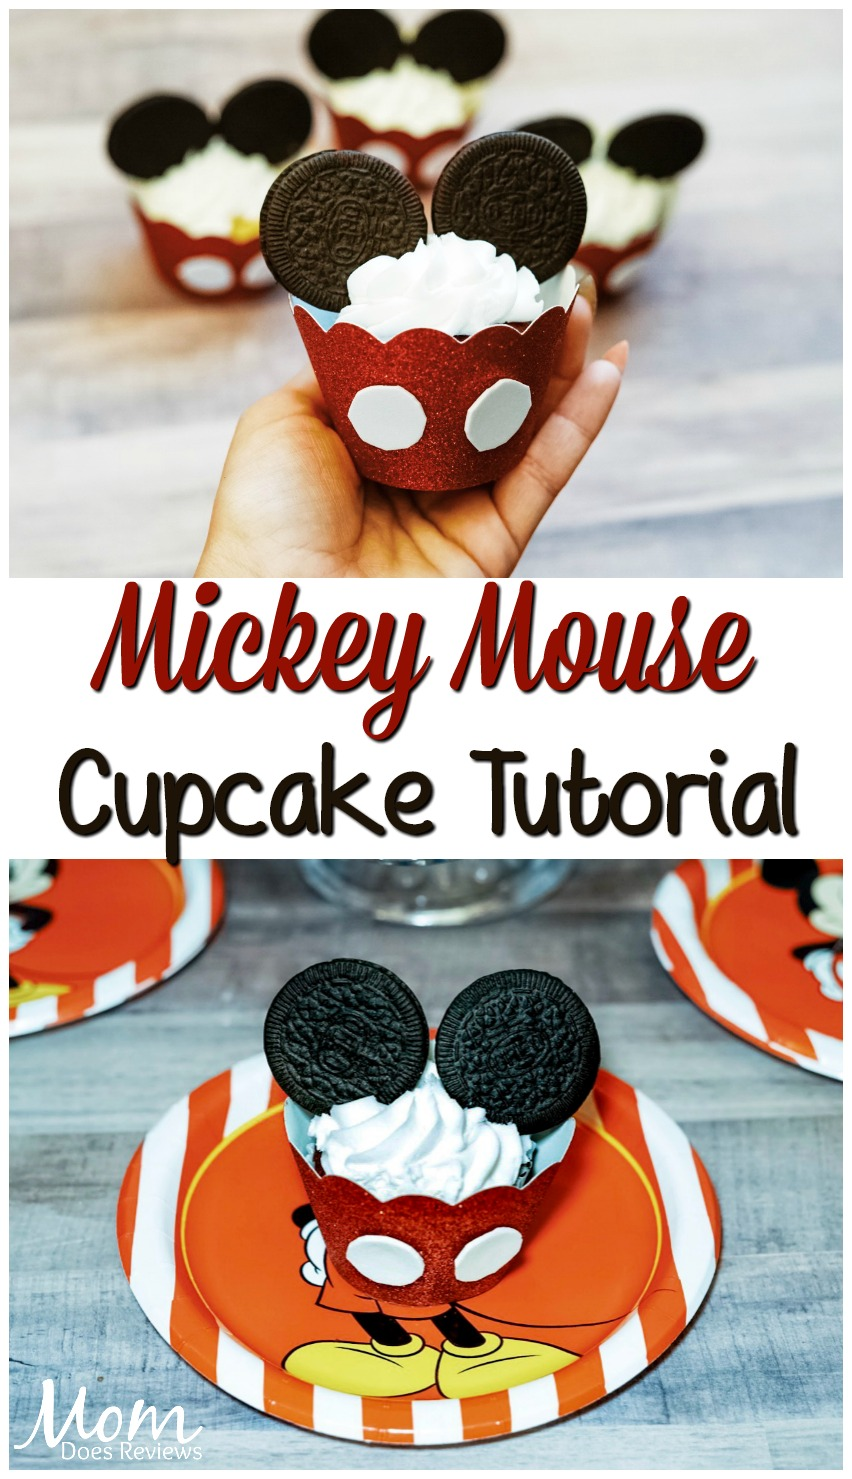 Mickey Mouse Cupcake Tutorial! #disney #cupcakes #food #birthdayparty #mickeymouse #yummy